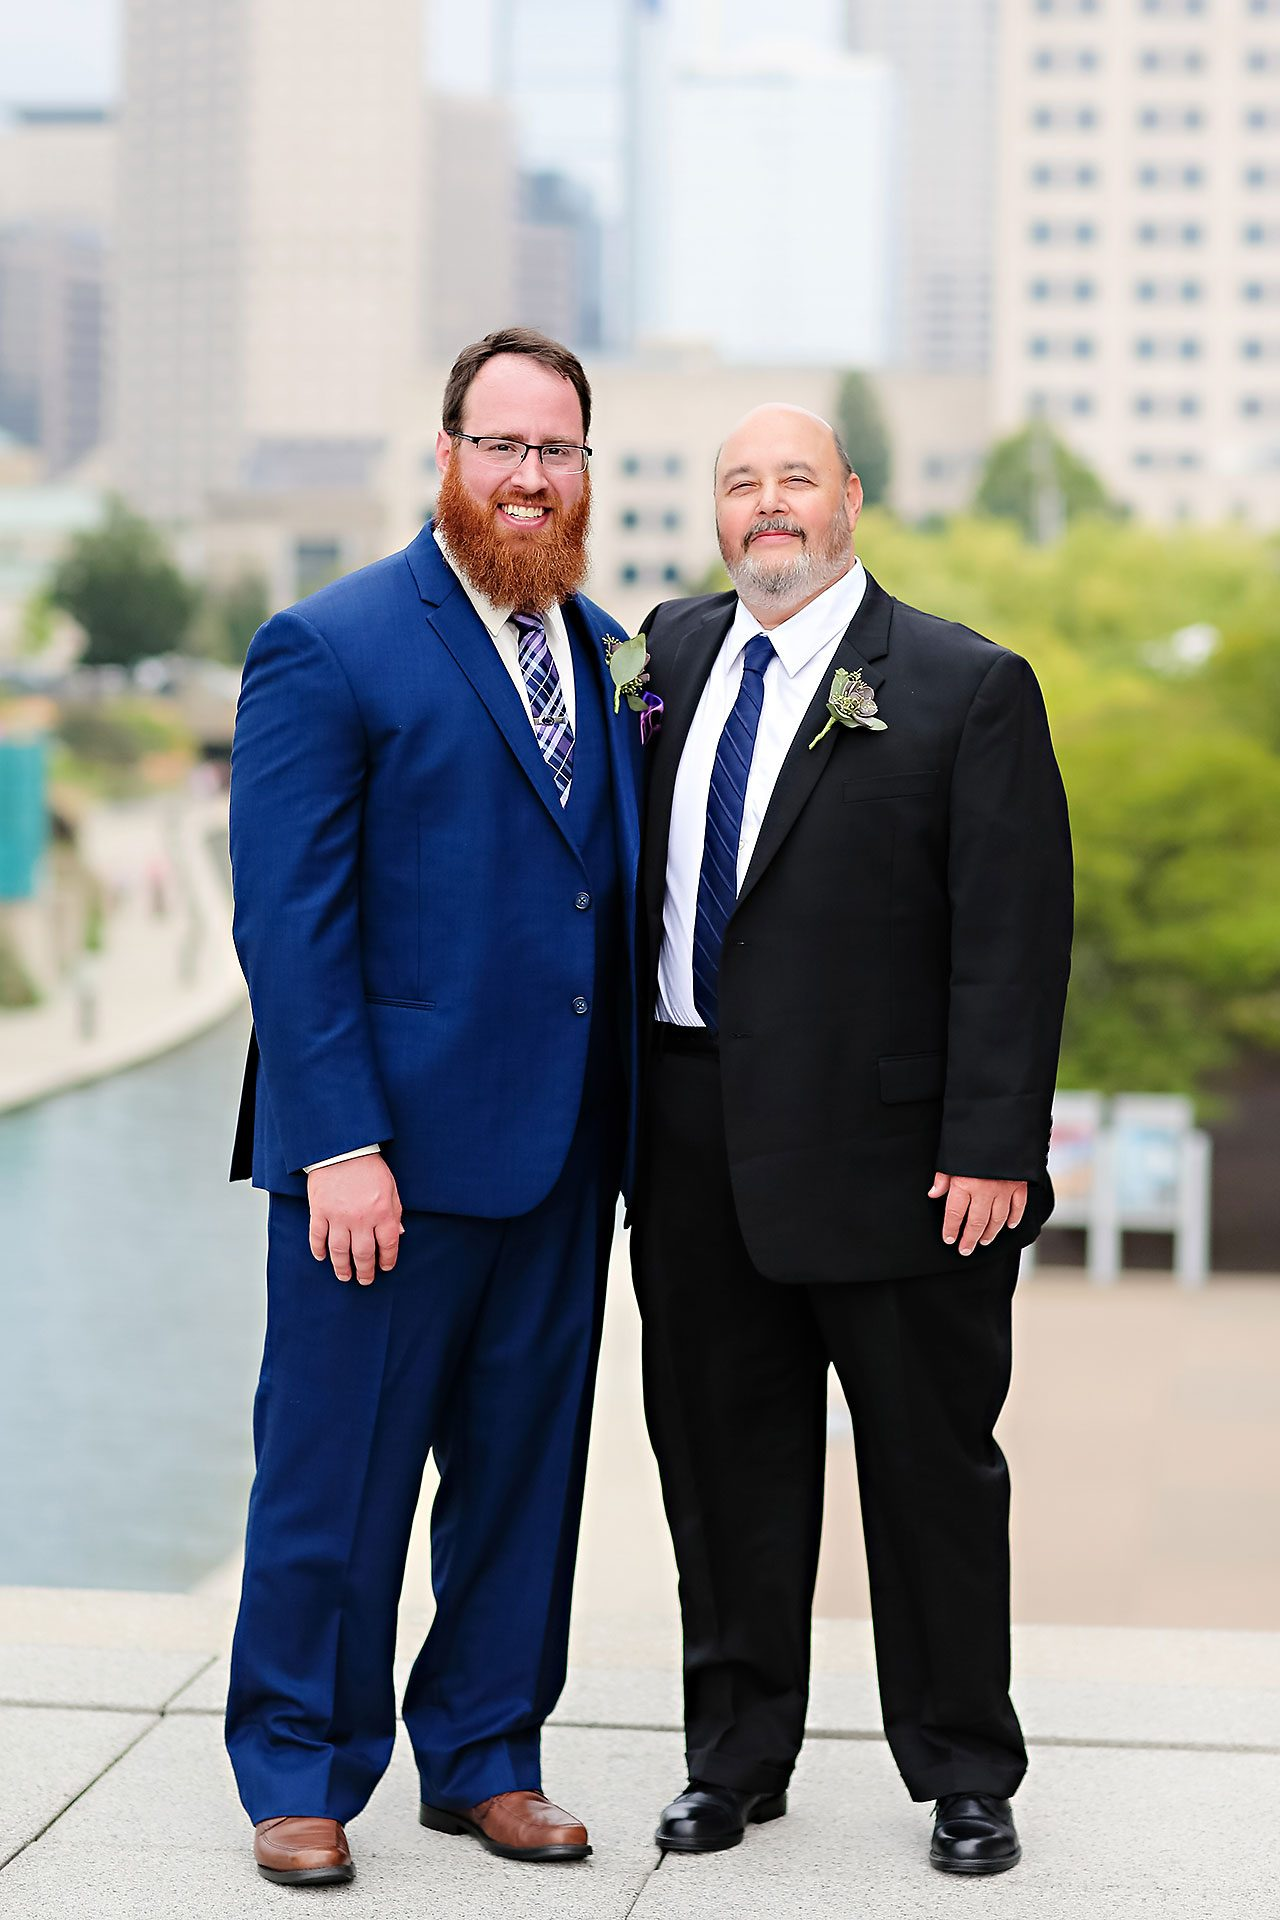 Kim Mike Indiana State Museum Wedding 186